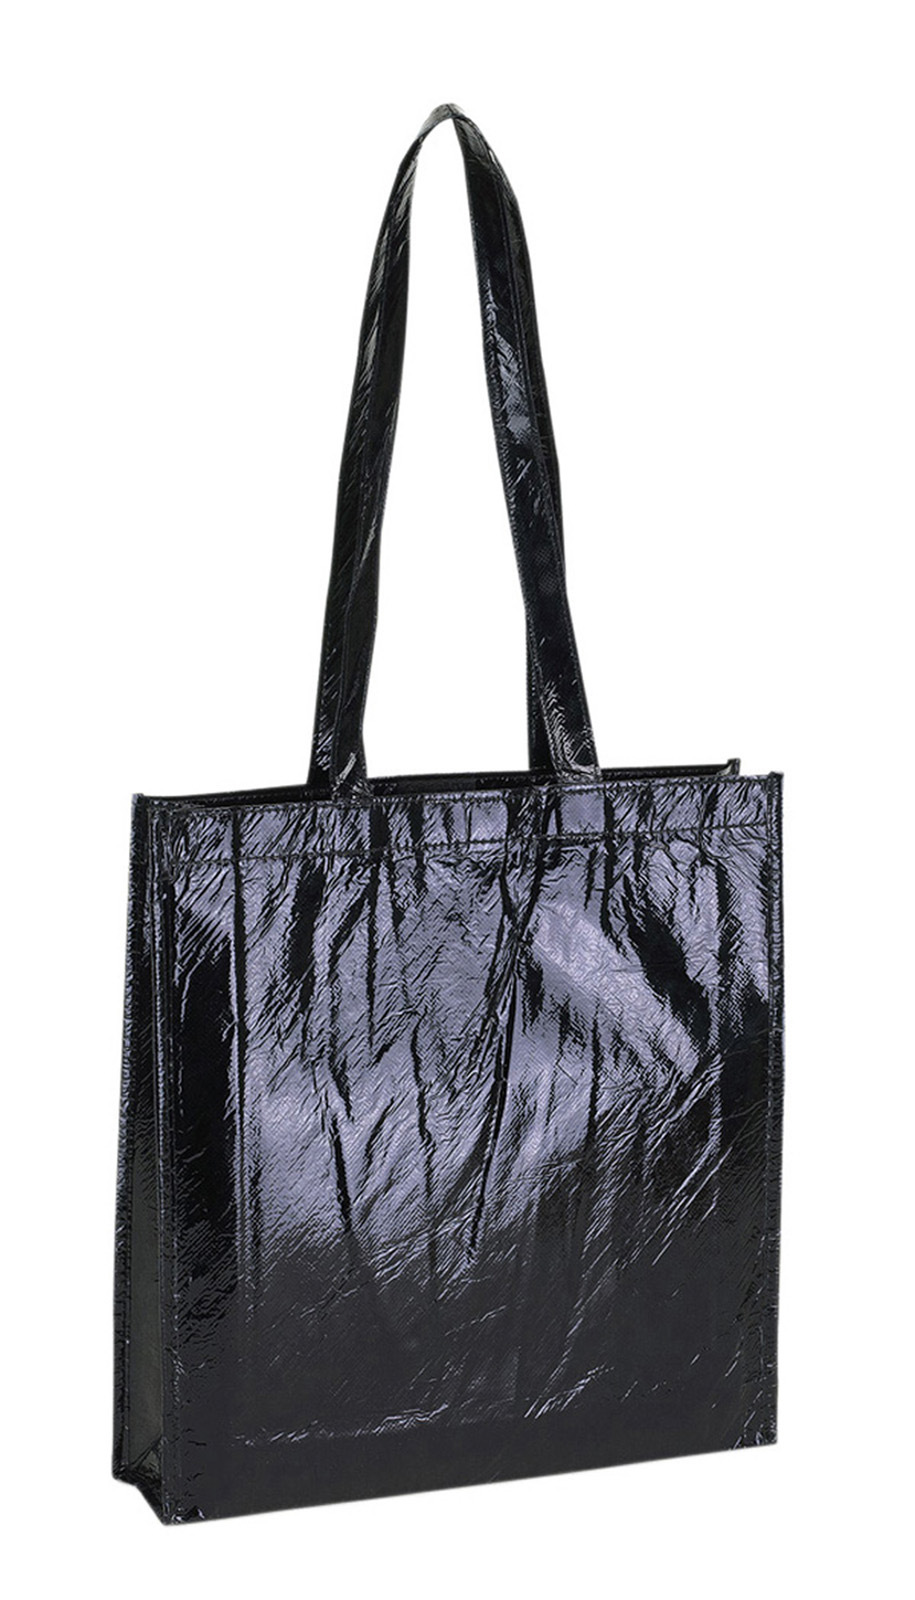 Laminated PP Non Woven Tote Bag, Reusable Shopping Bags